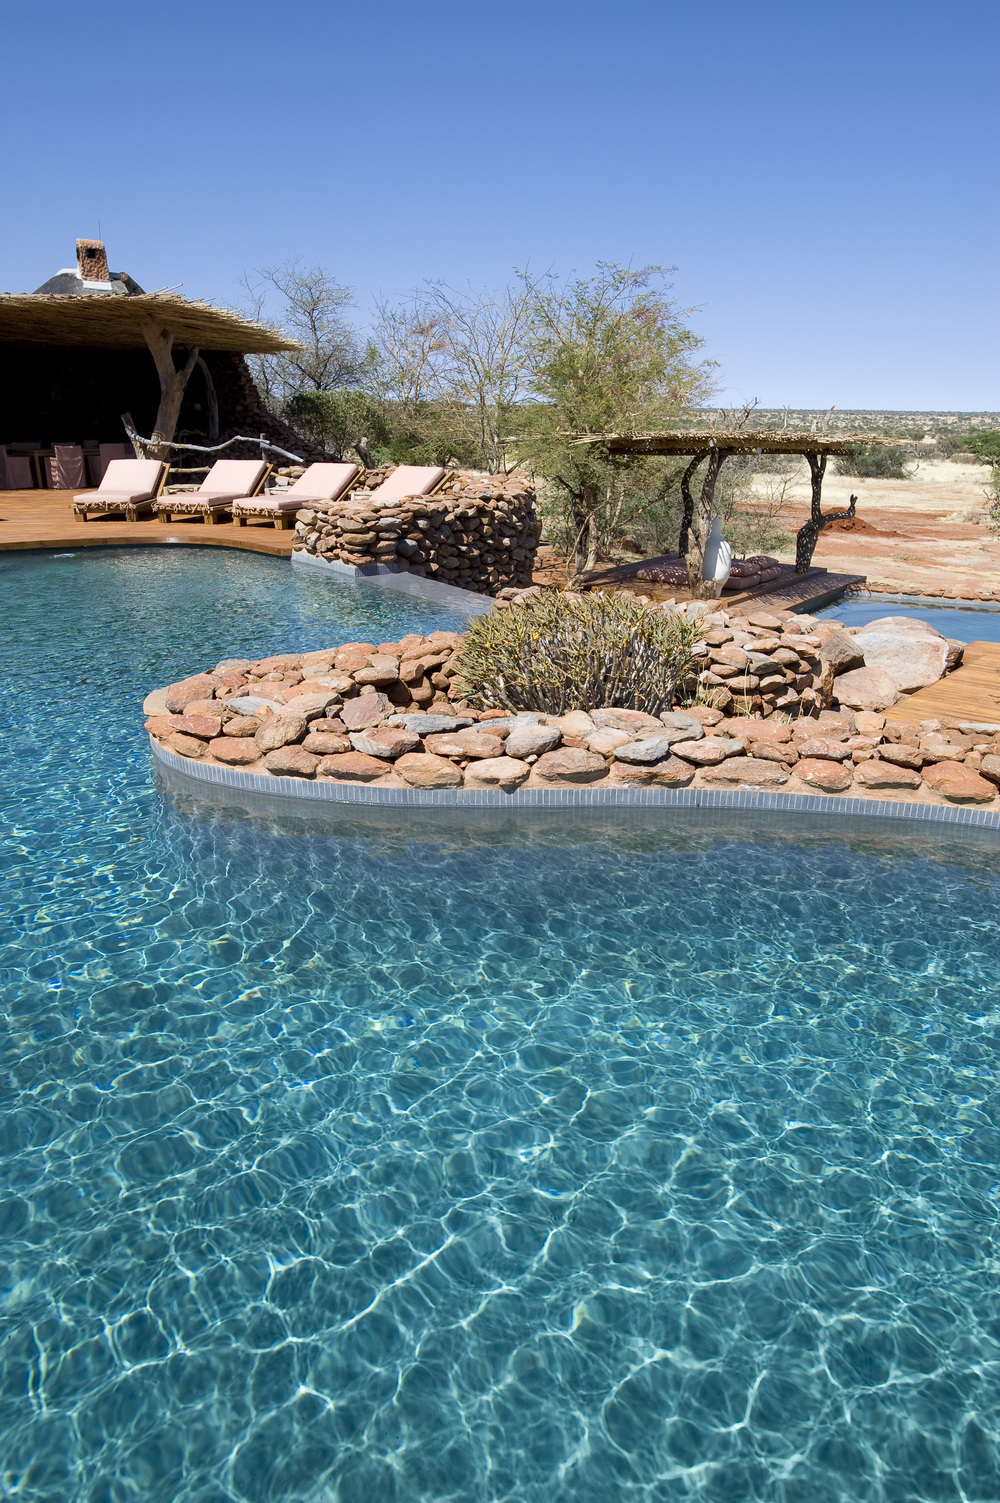 The pool at the Motse, Tswalu's main lodge